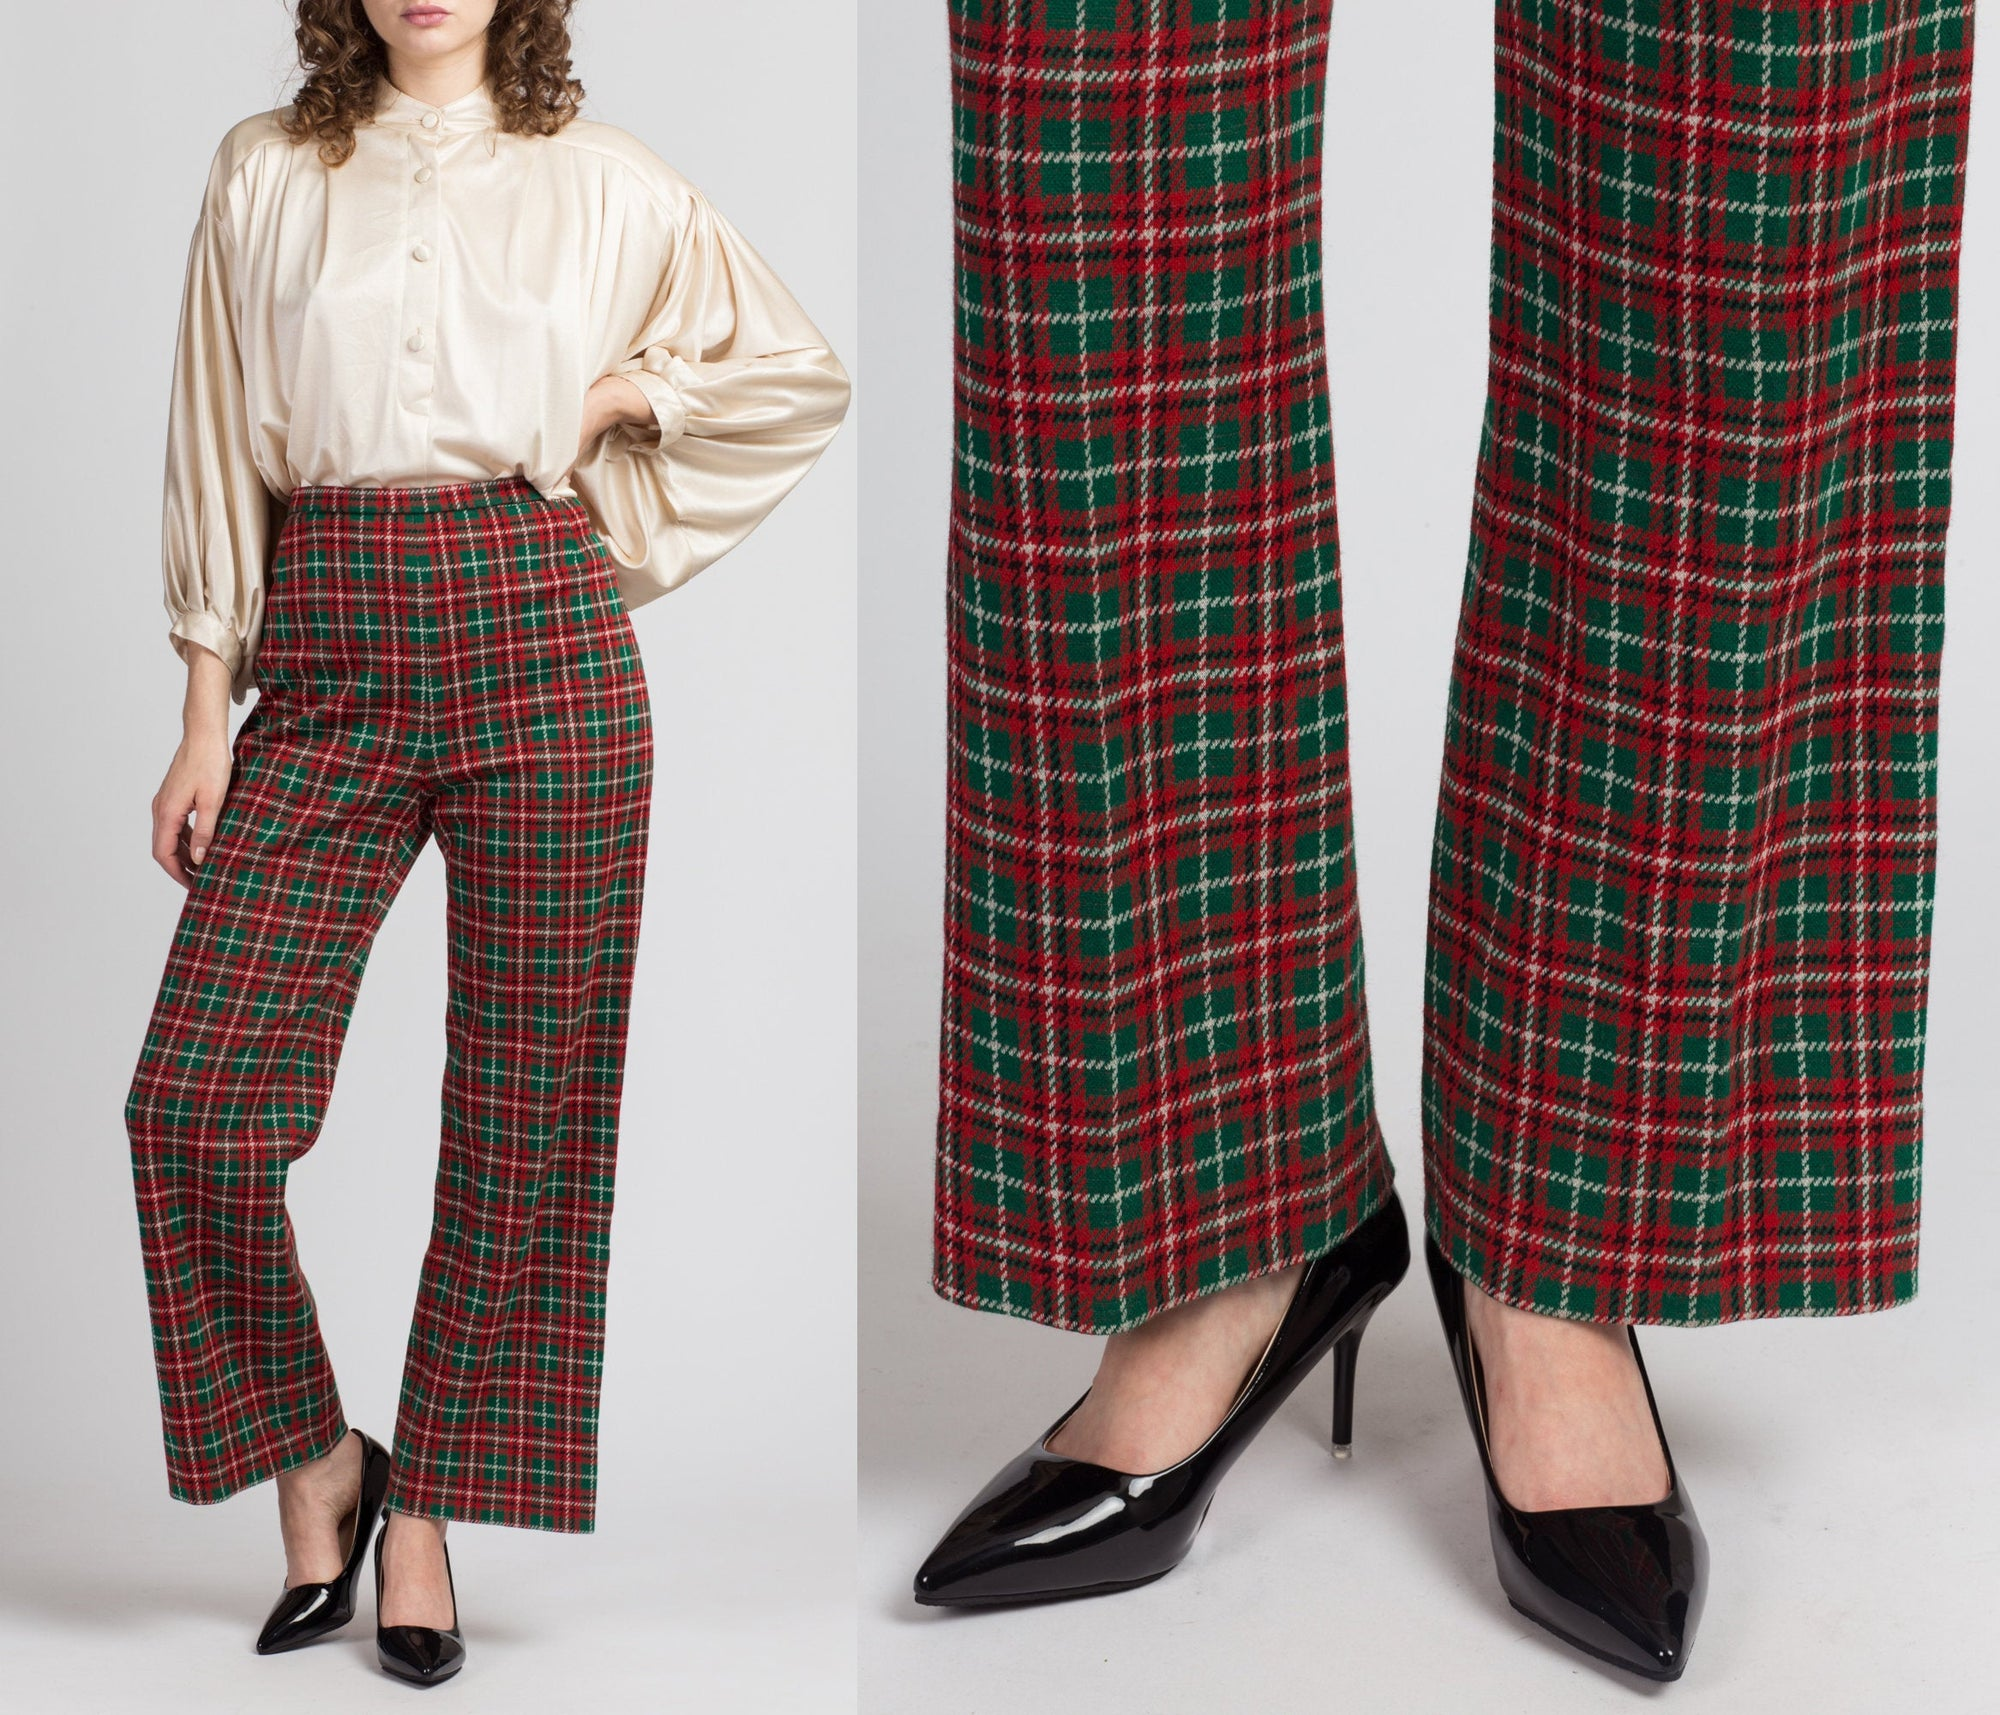 80s Red & Green Plaid Trousers - Medium to Large